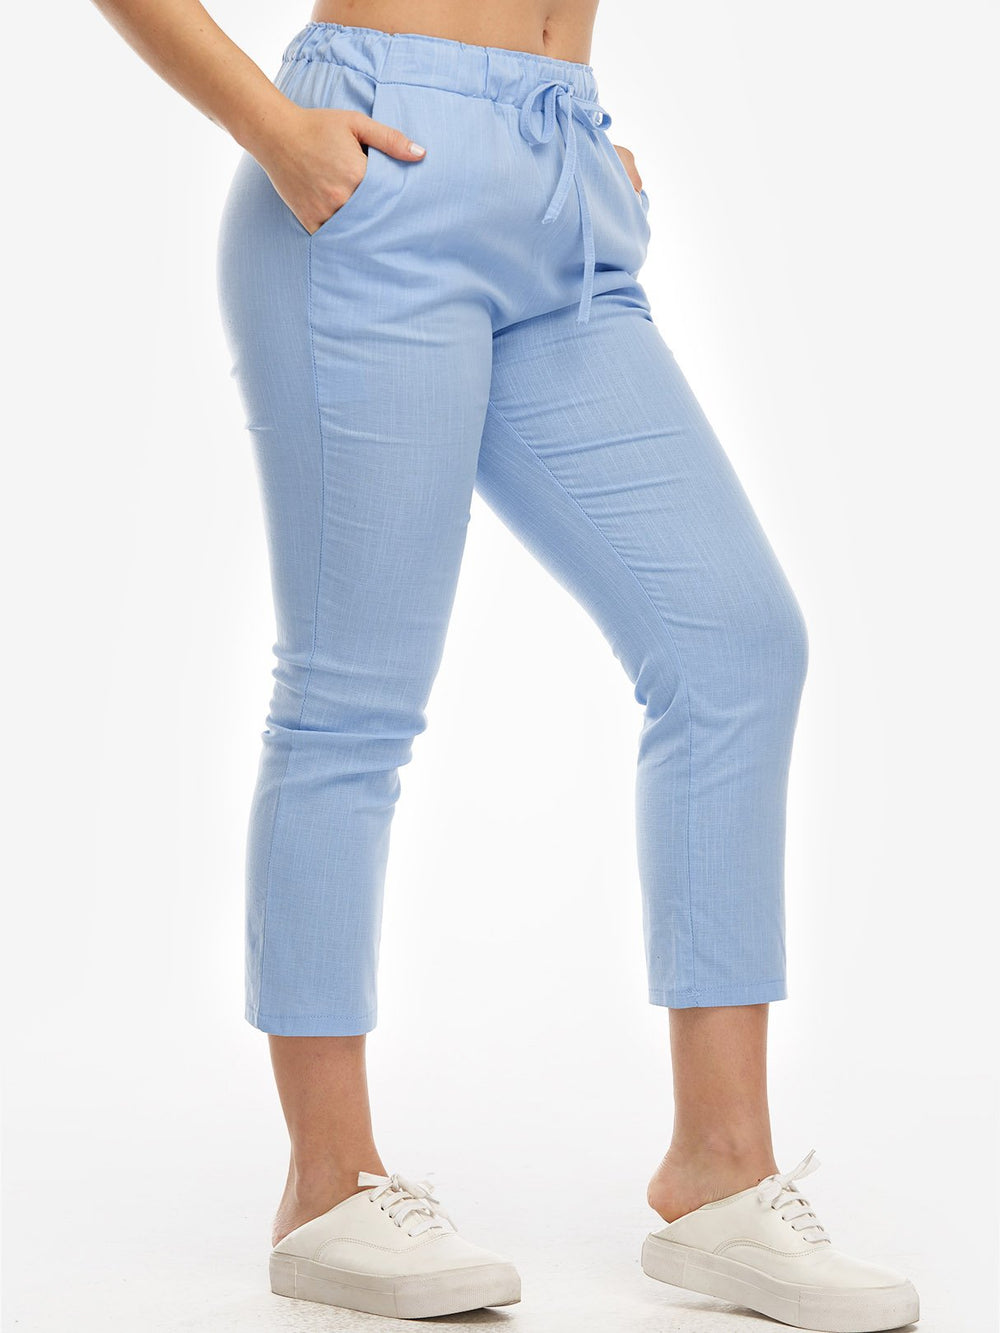 Ladies Blue Plus Size Bottoms